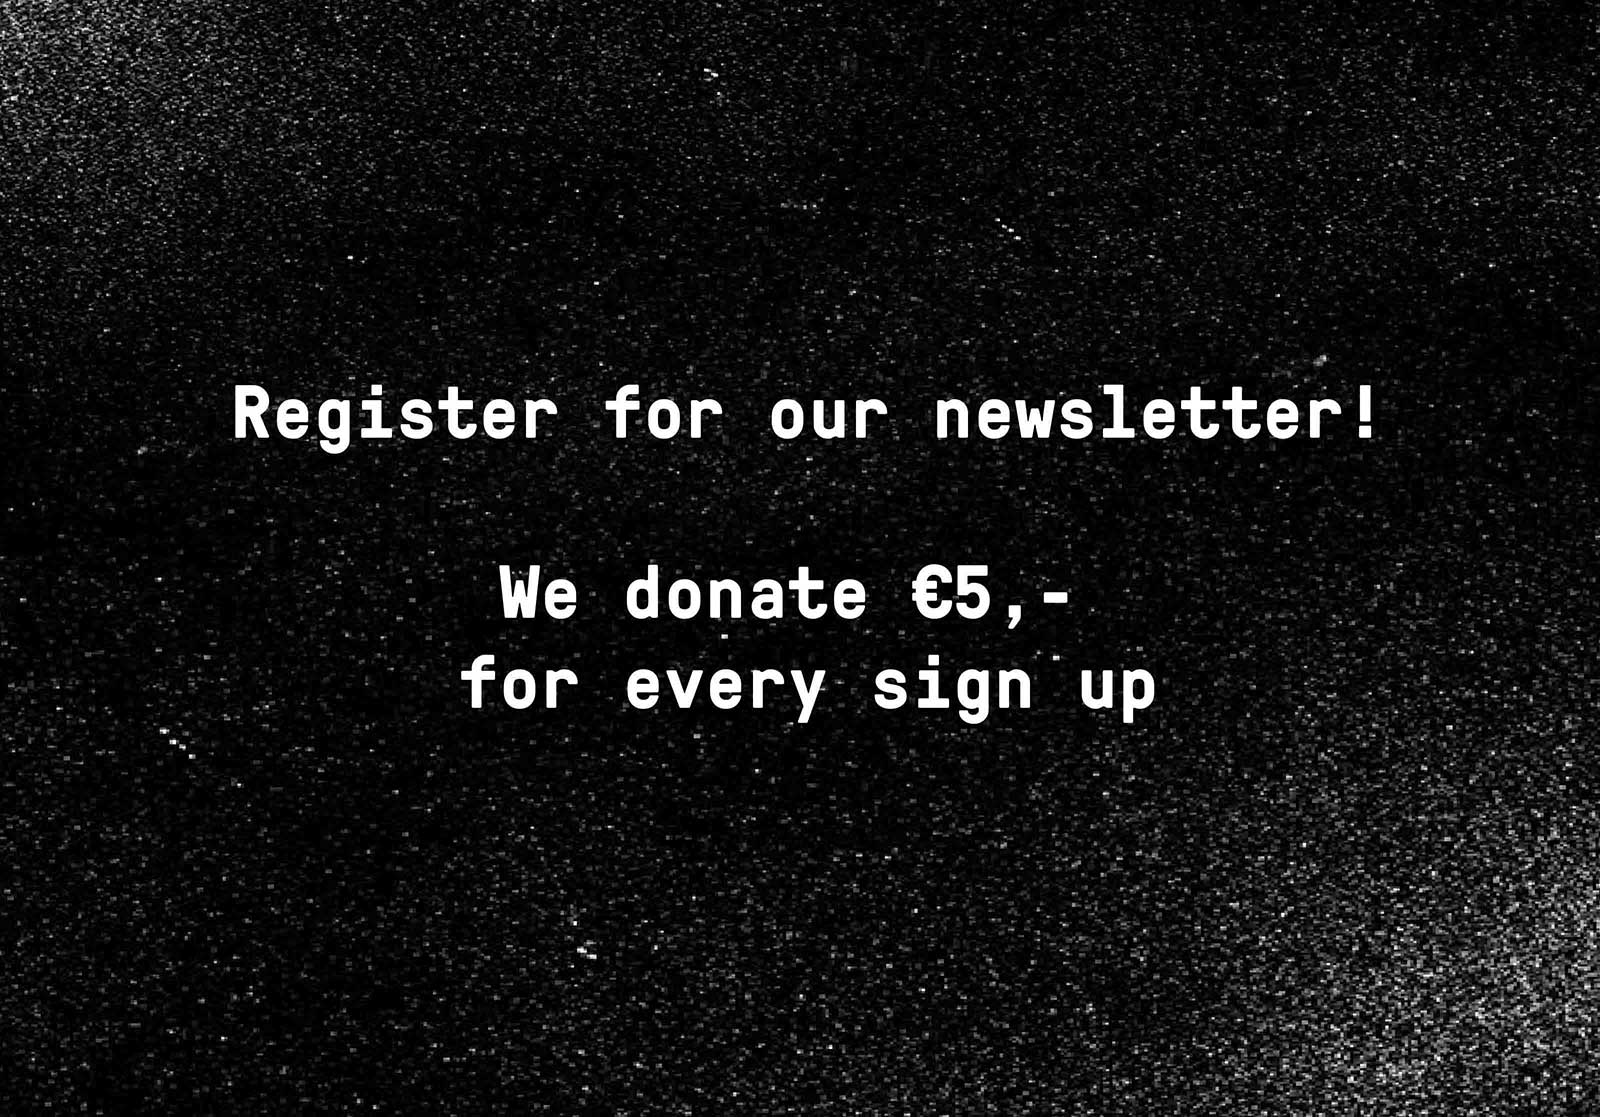 Sign up for our newsletter - We donate €5 with every subscription